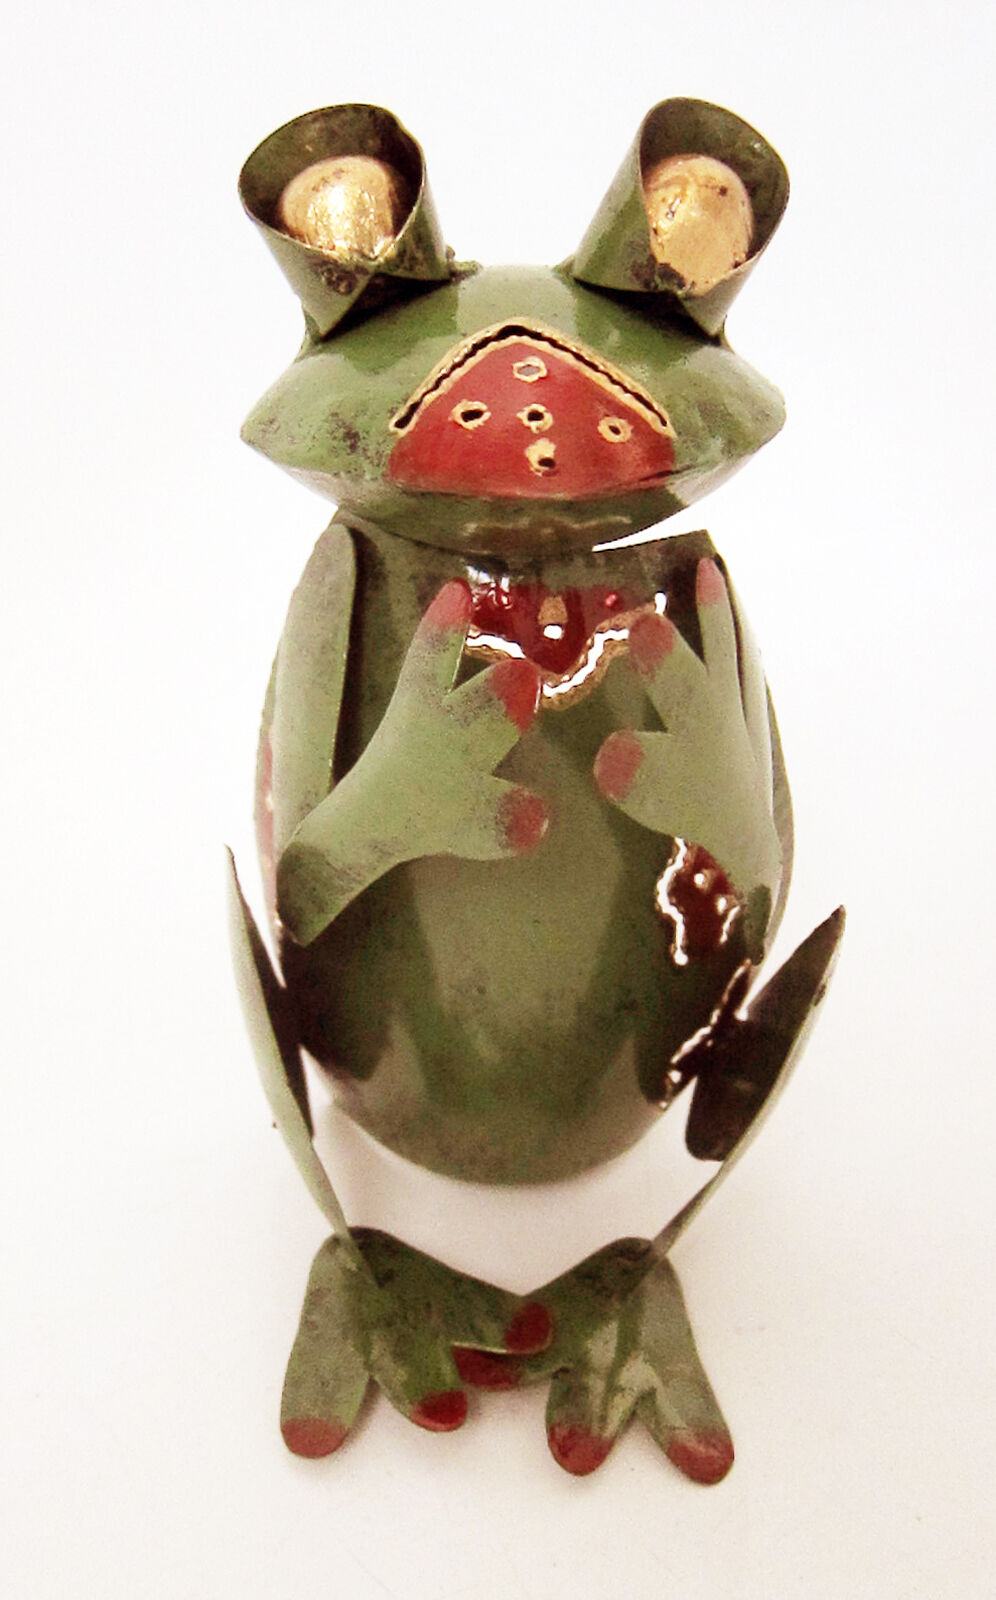 FROG shaped tea light candle holder green + gold painted steel fair trade, new